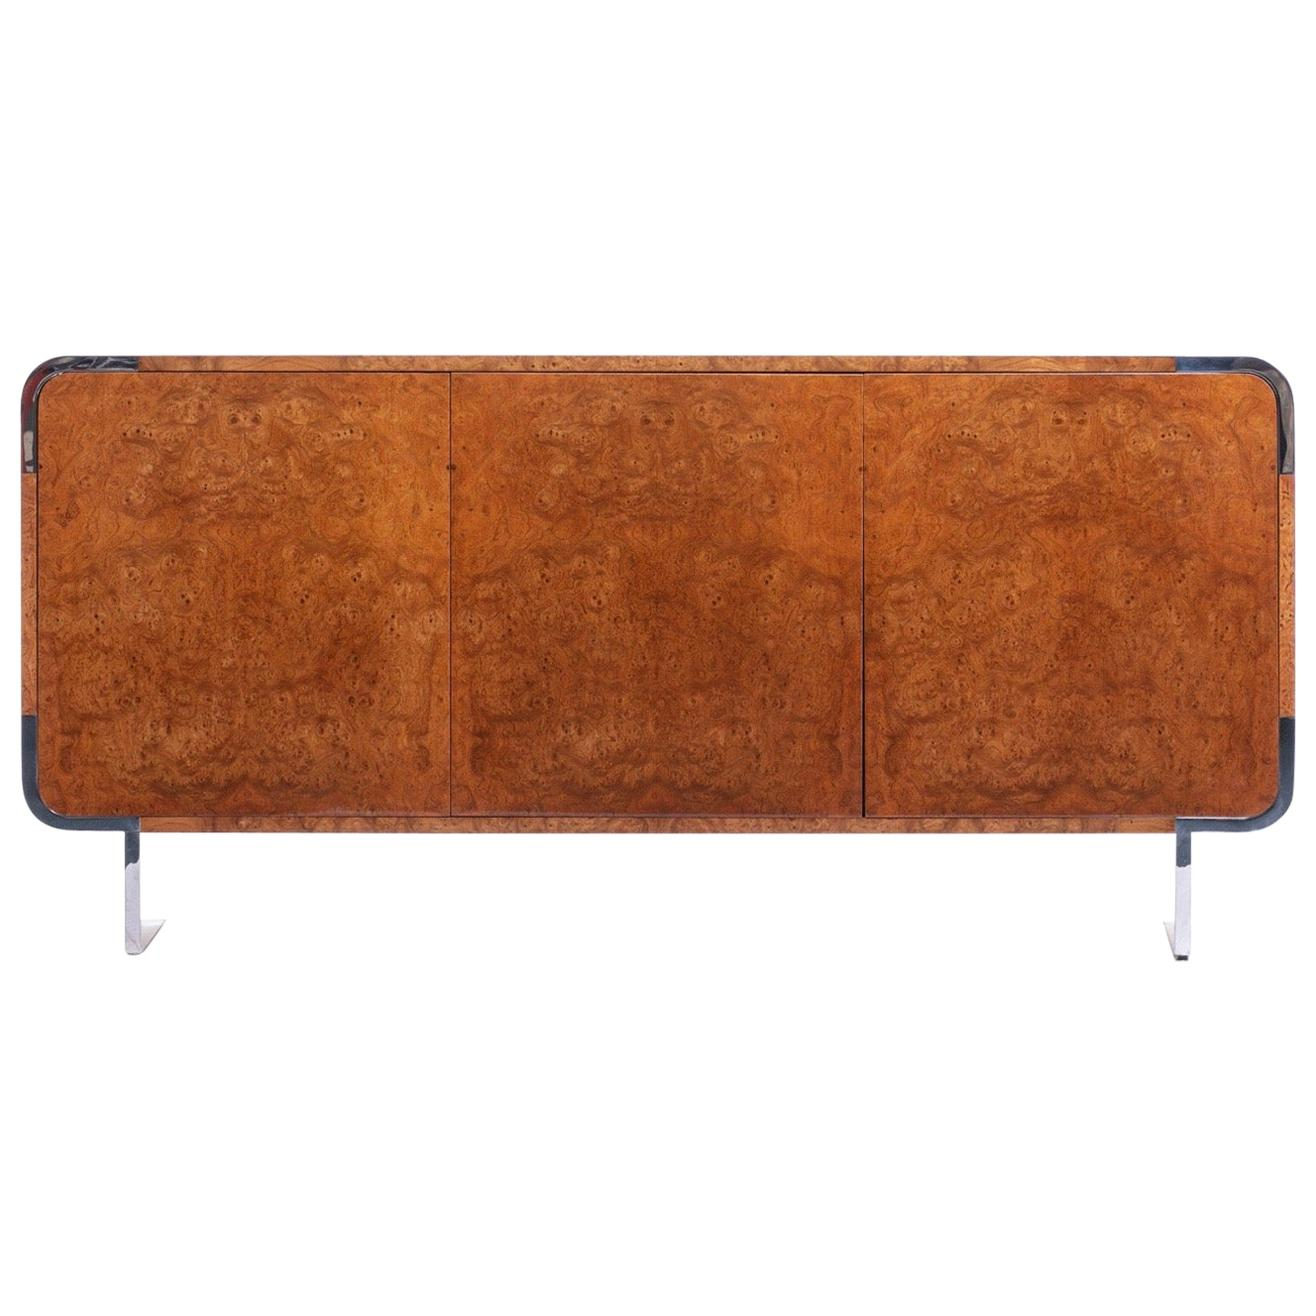 Pace Burl Wood and Chrome Credenza by Leon Rosen, circa 1974